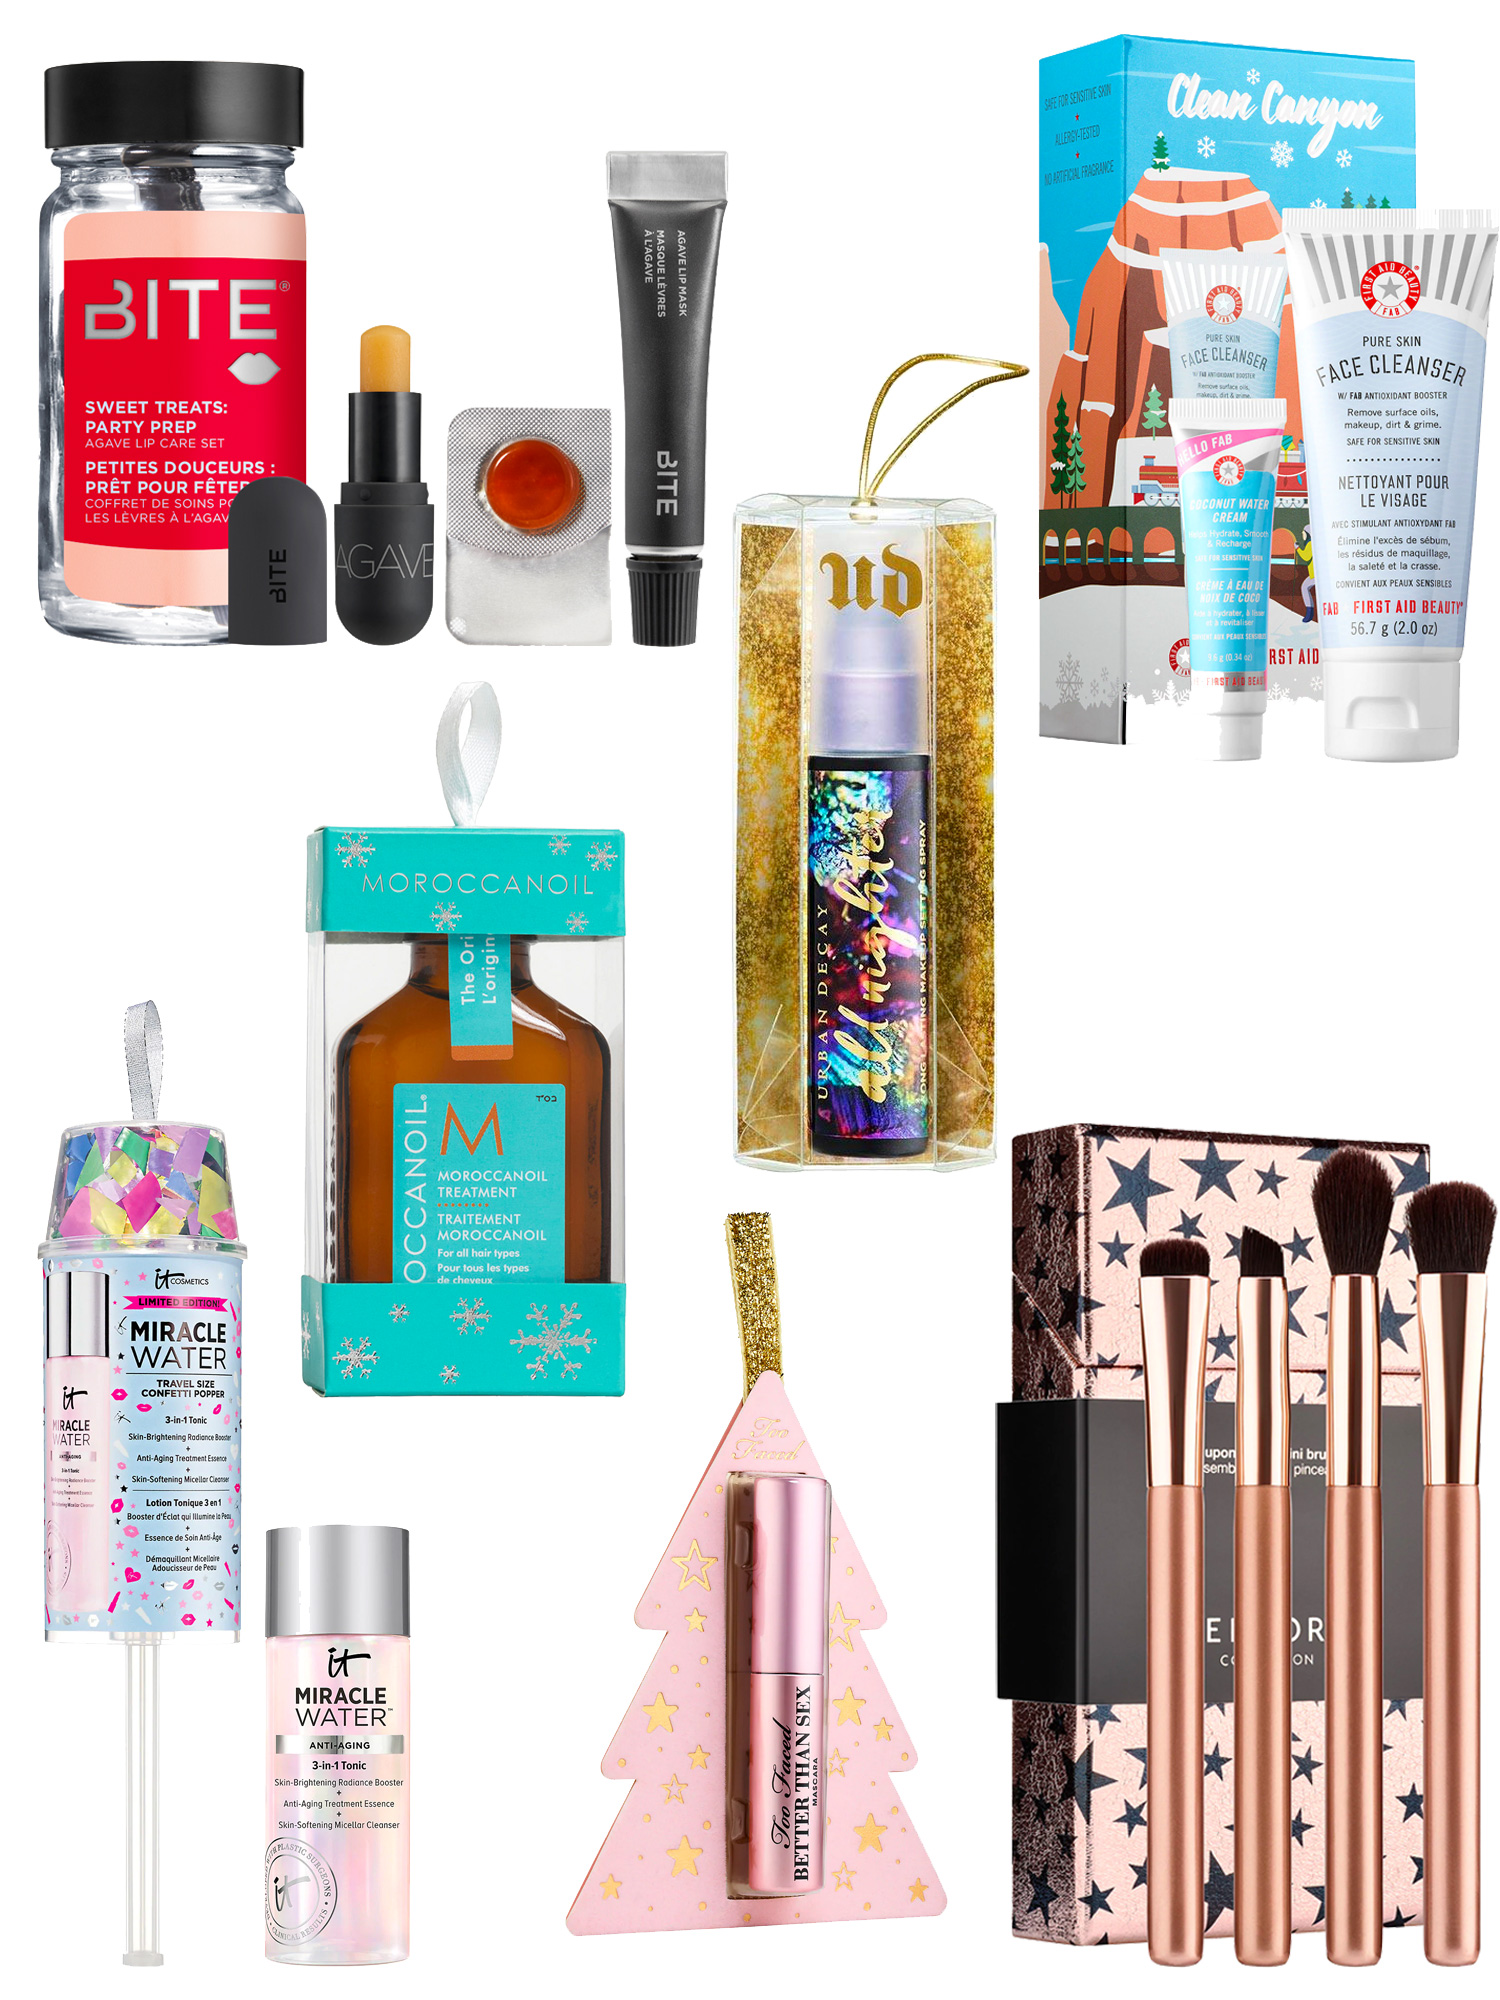 Sephora 2018 Holiday Beauty Insider Sale Details + Black Friday Preview